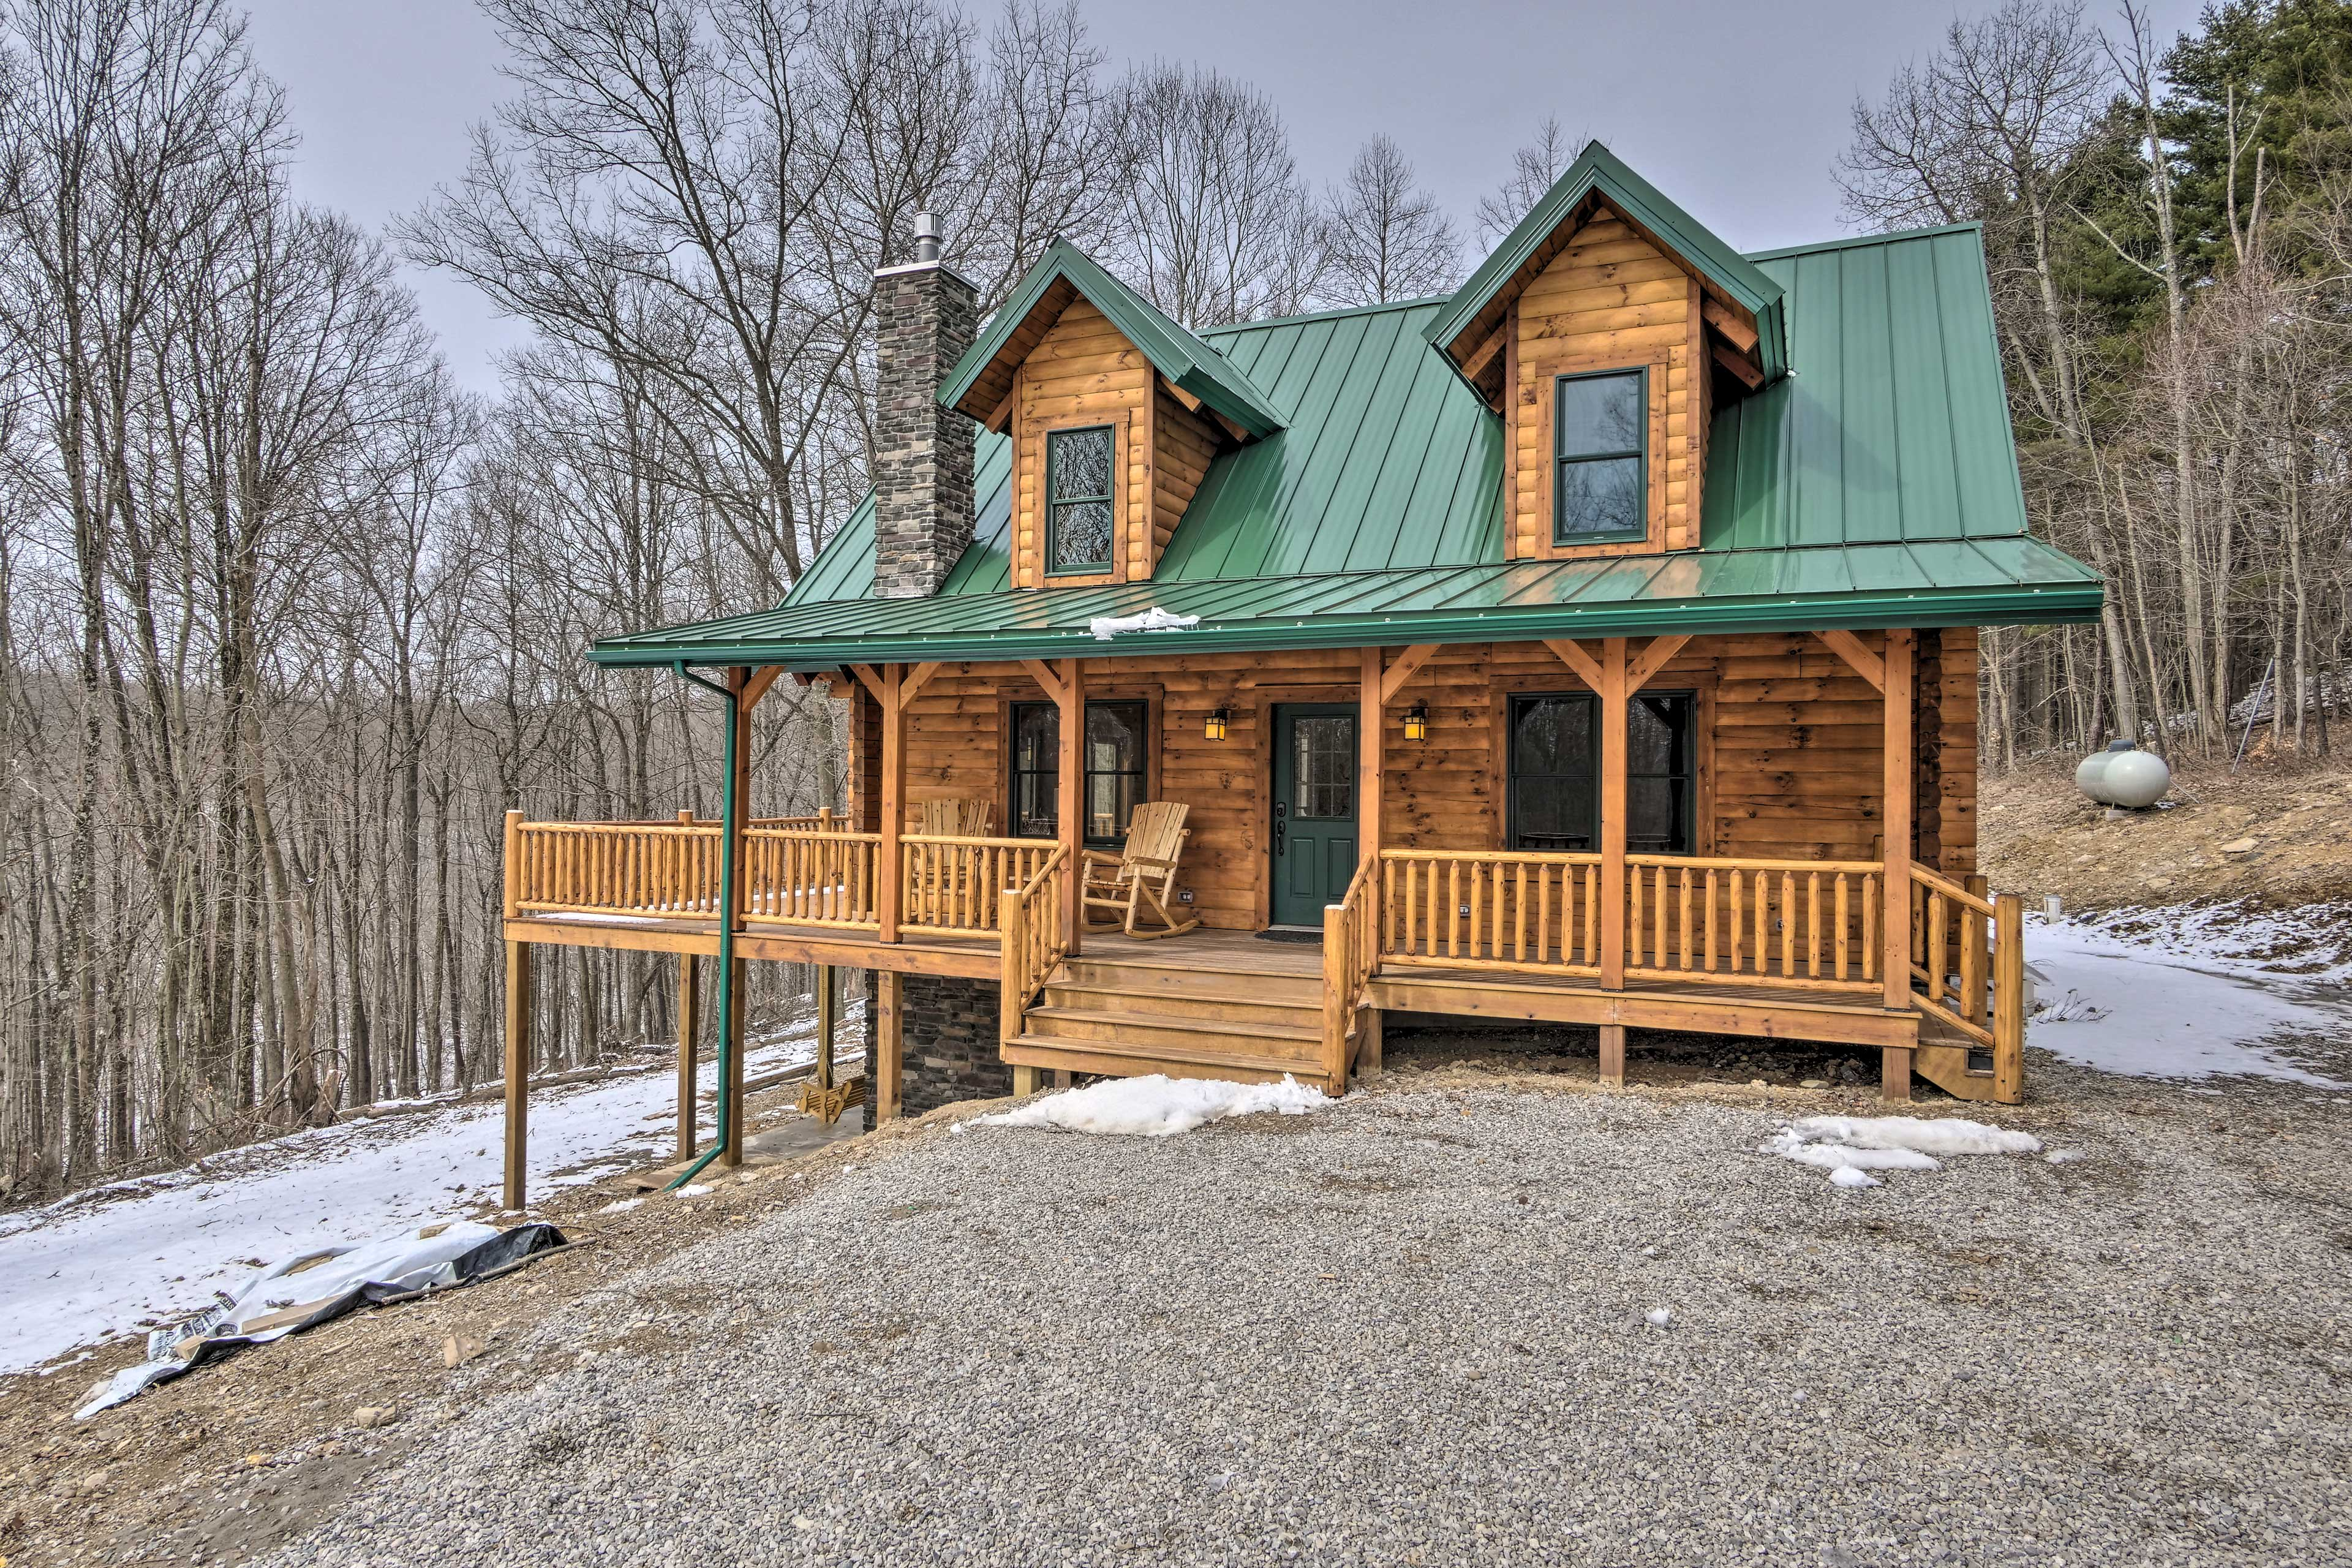 Fall in love with this log cabin.